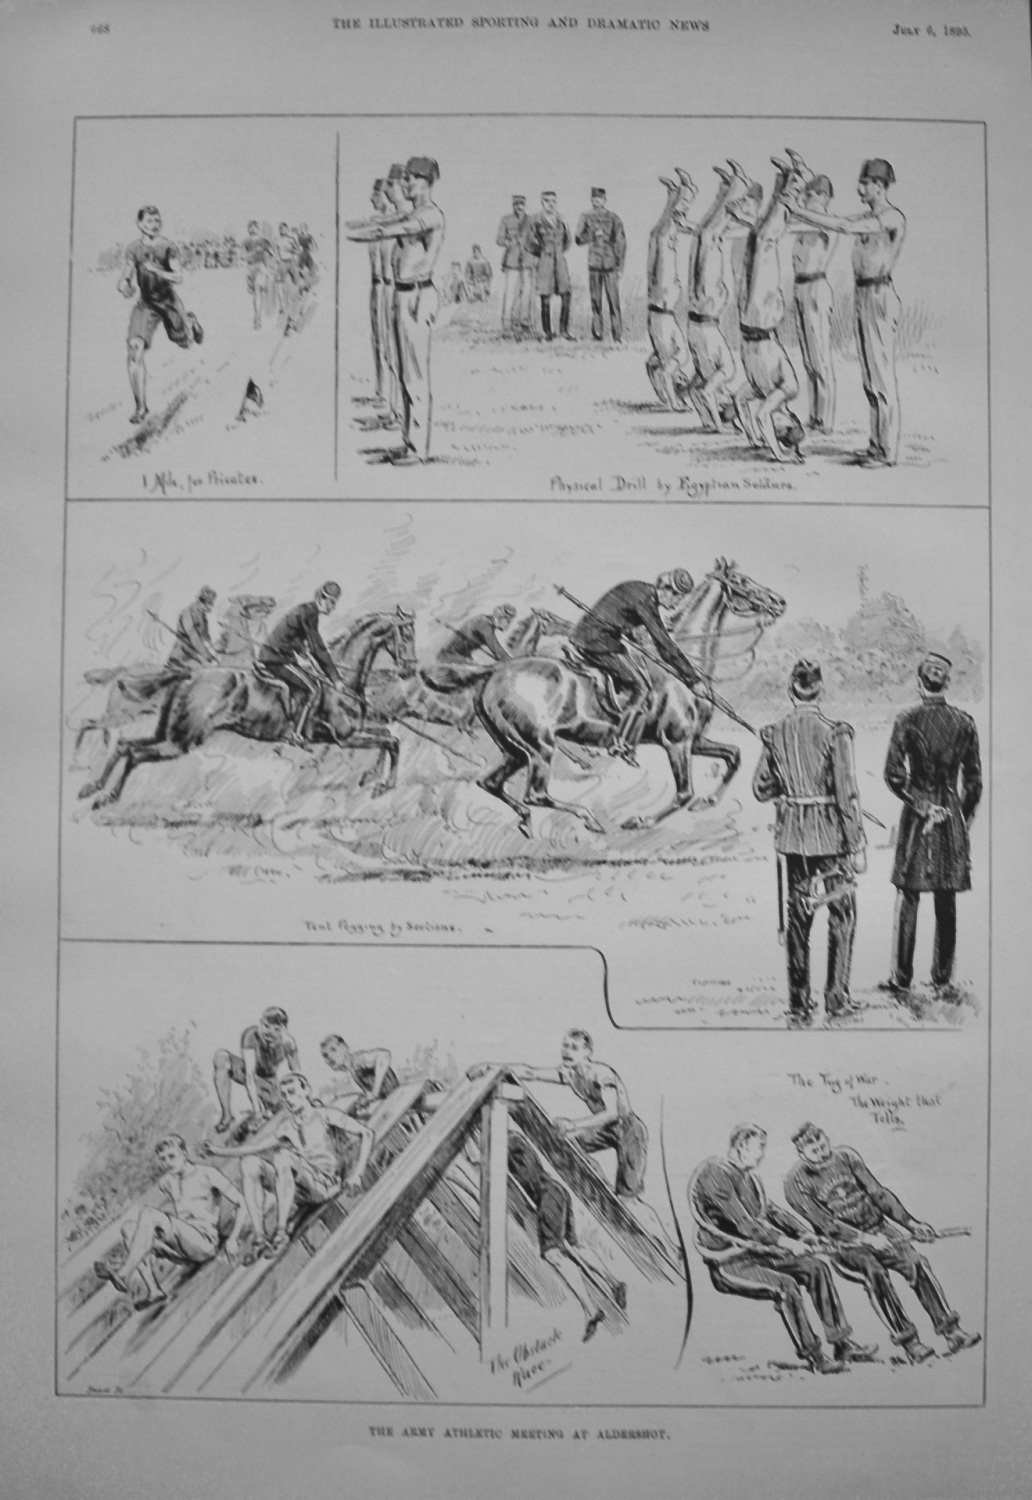 Army Athletic Meeting at Aldershot. 1895